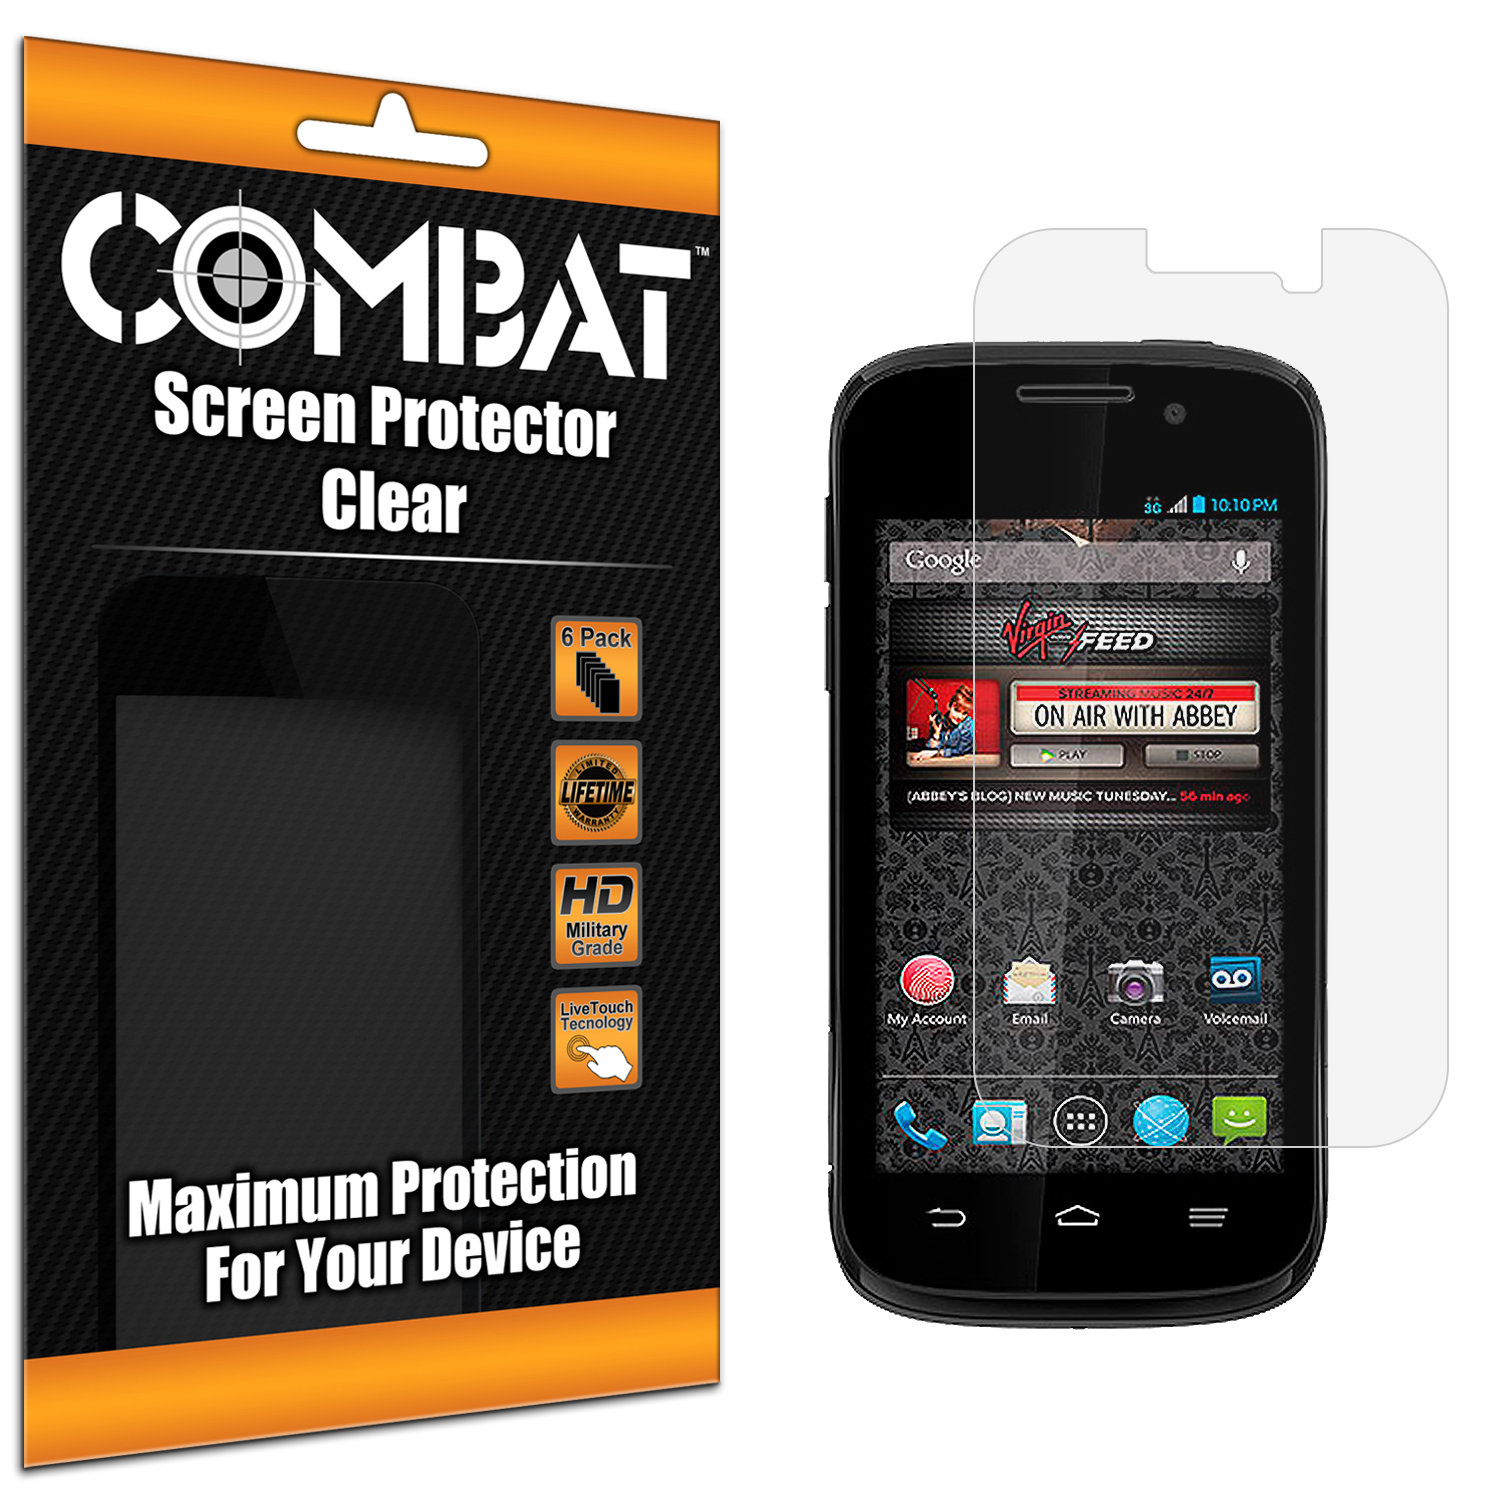 ZTE Reef N810 Combat 6 Pack HD Clear Screen Protector